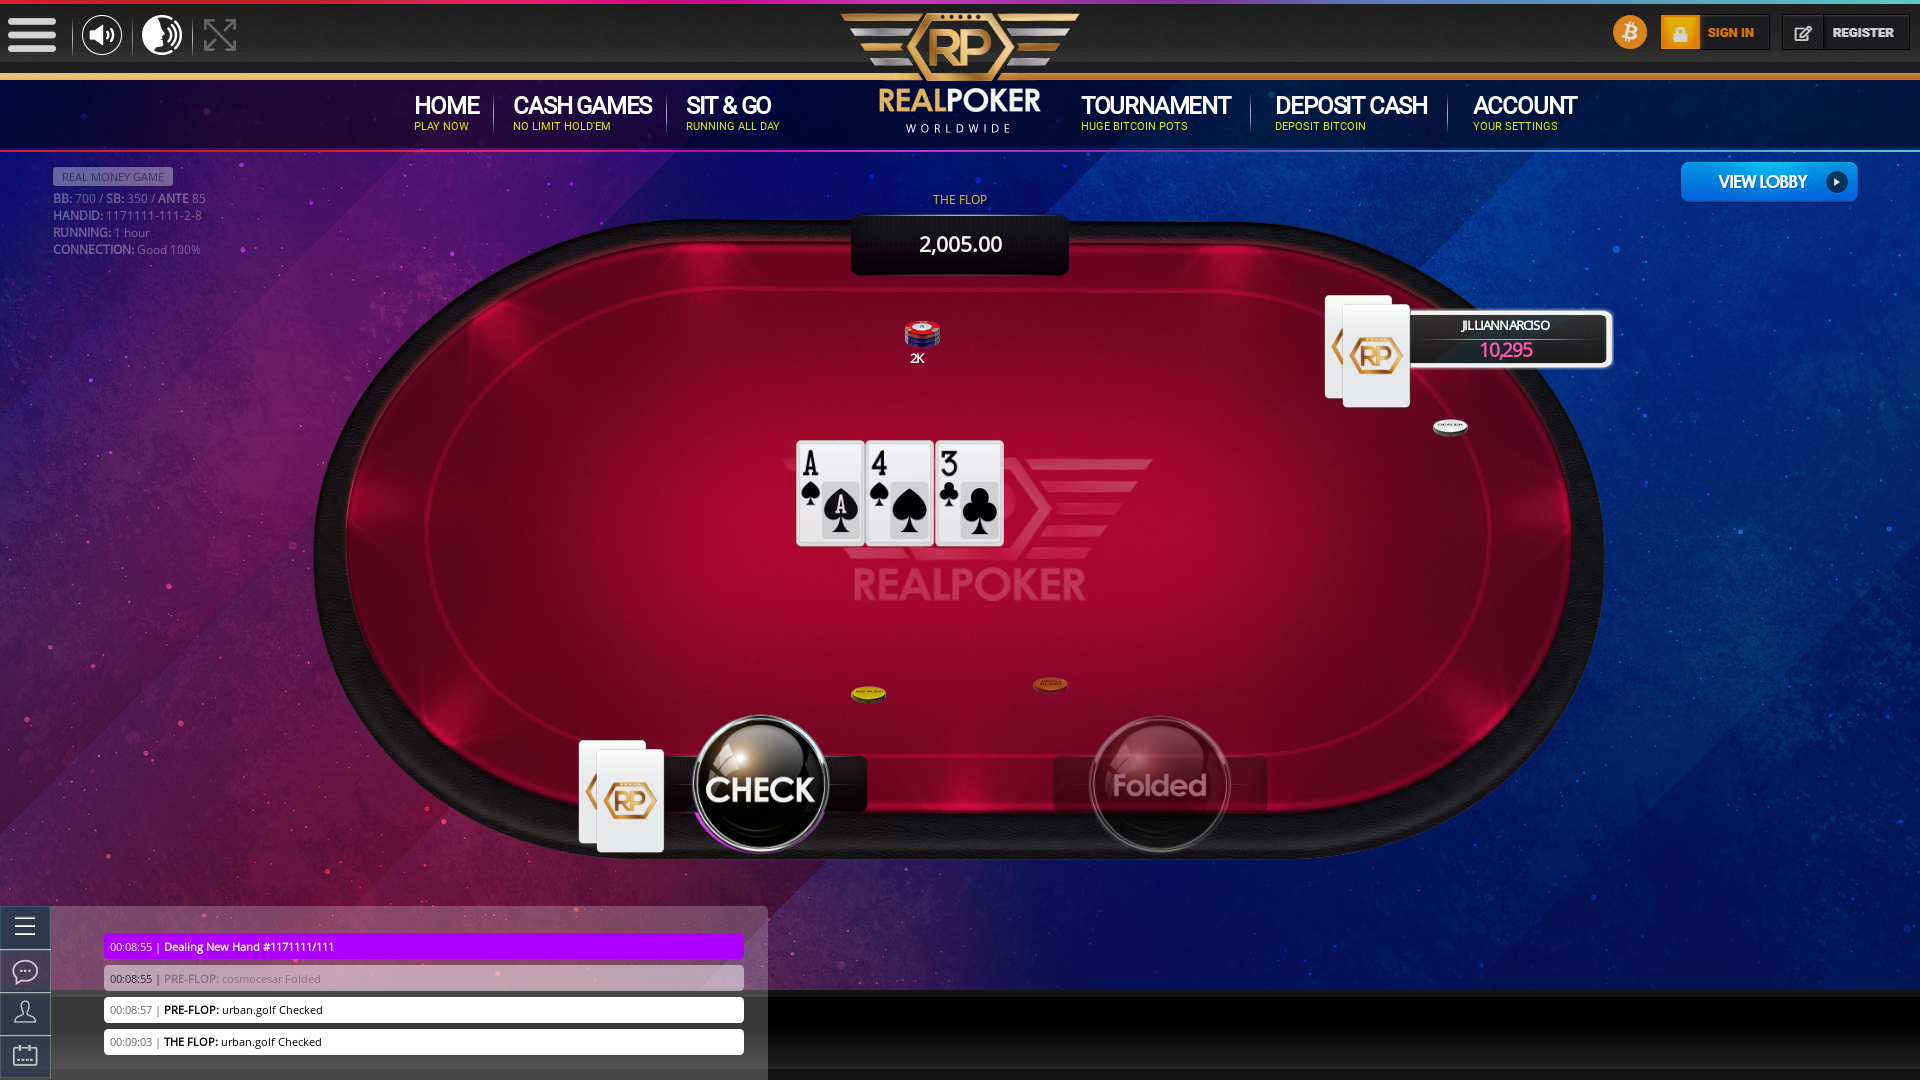 10 player texas holdem table at real poker with the table id 1171111